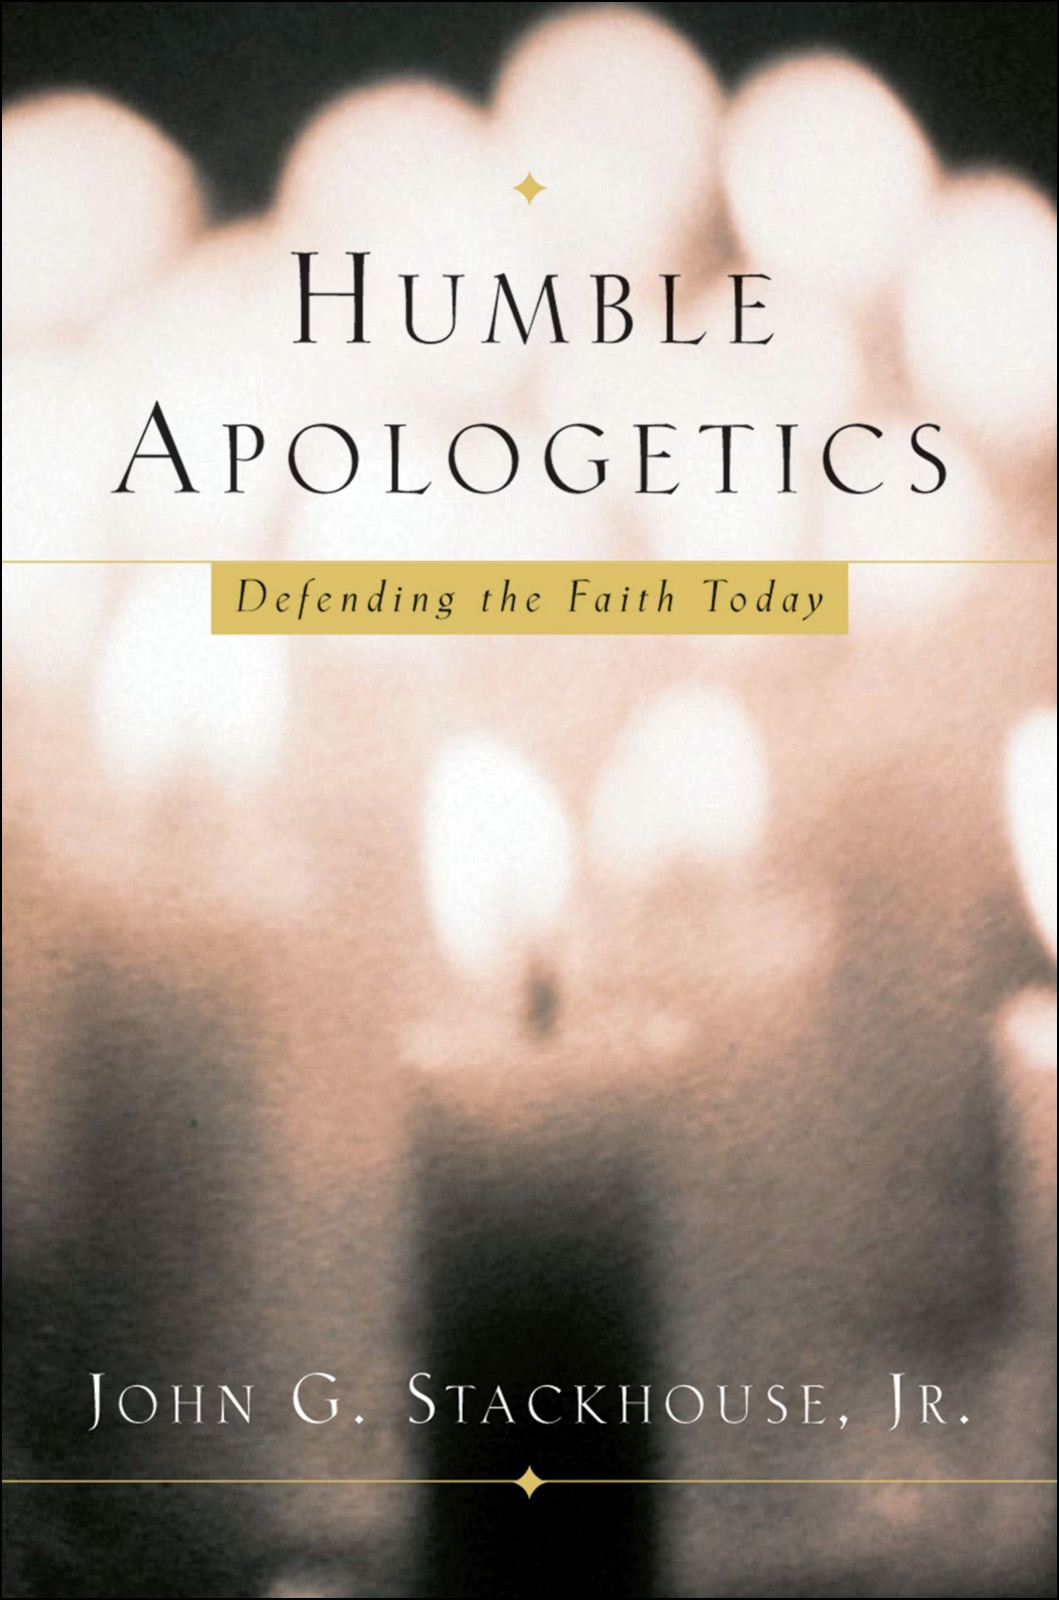 Humble Apologetics : Defending the Faith Today By: John G. Stackhouse